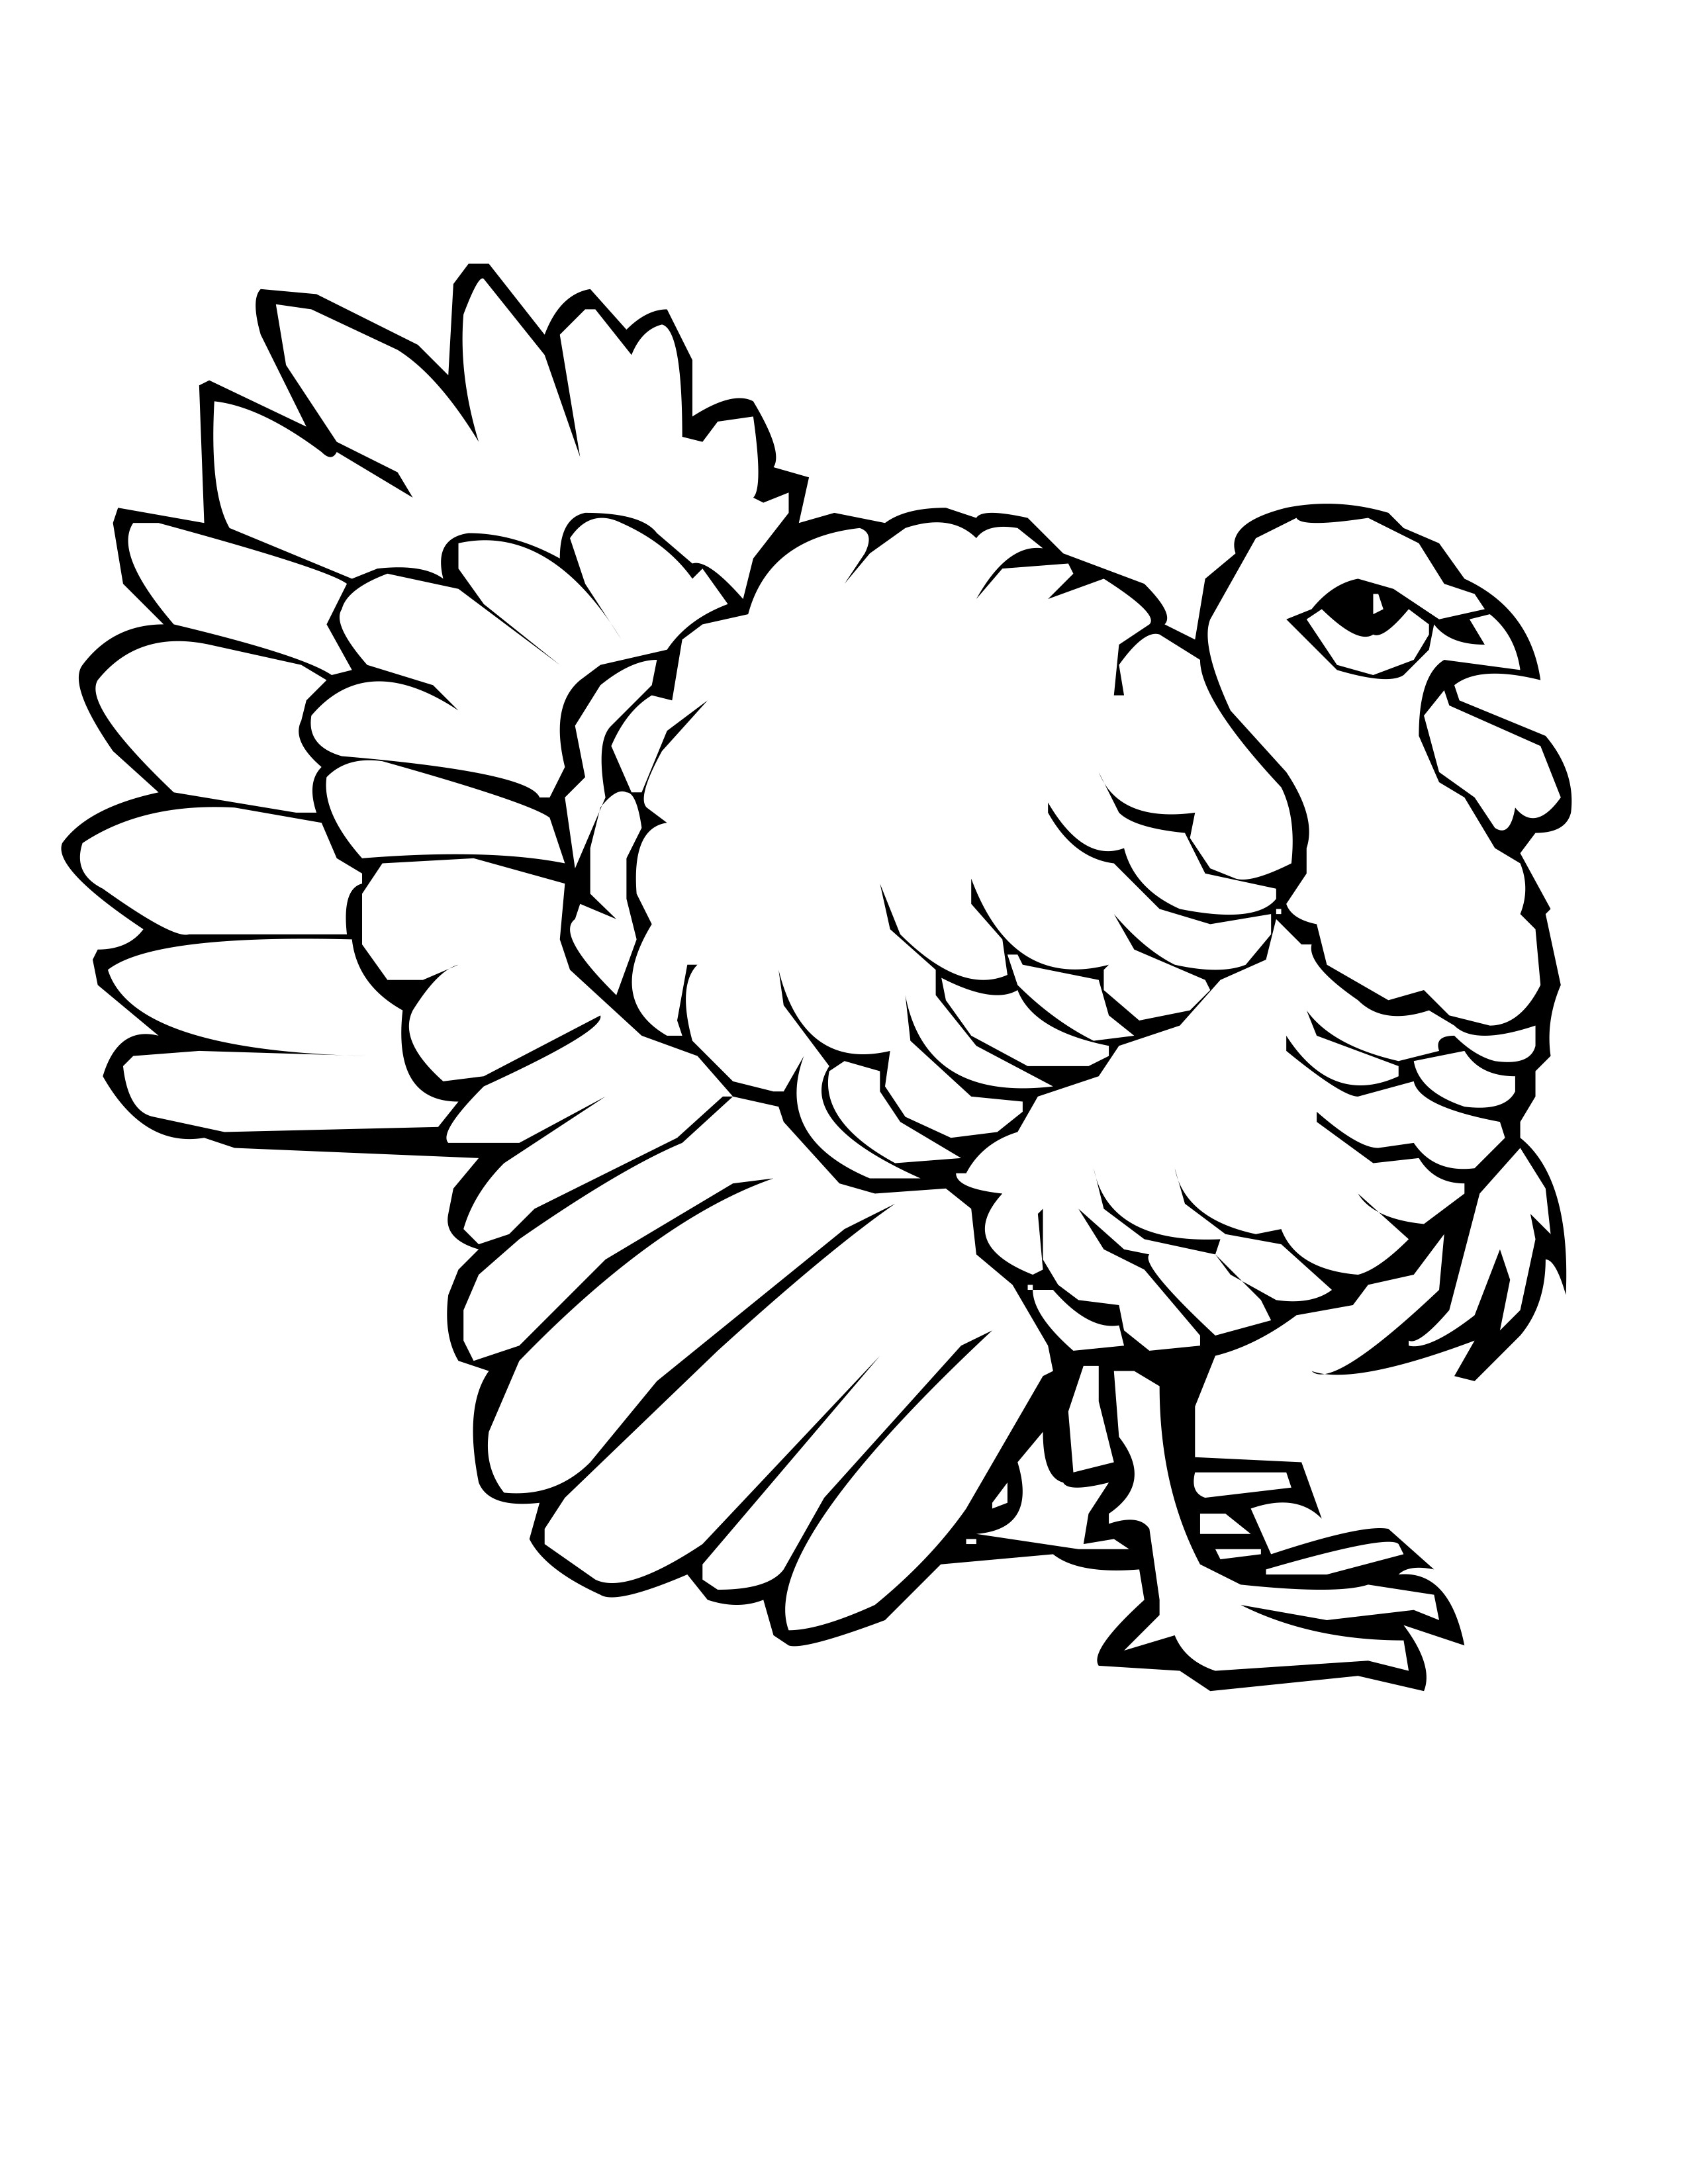 free printable turkey coloring pages - turkey coloring pages